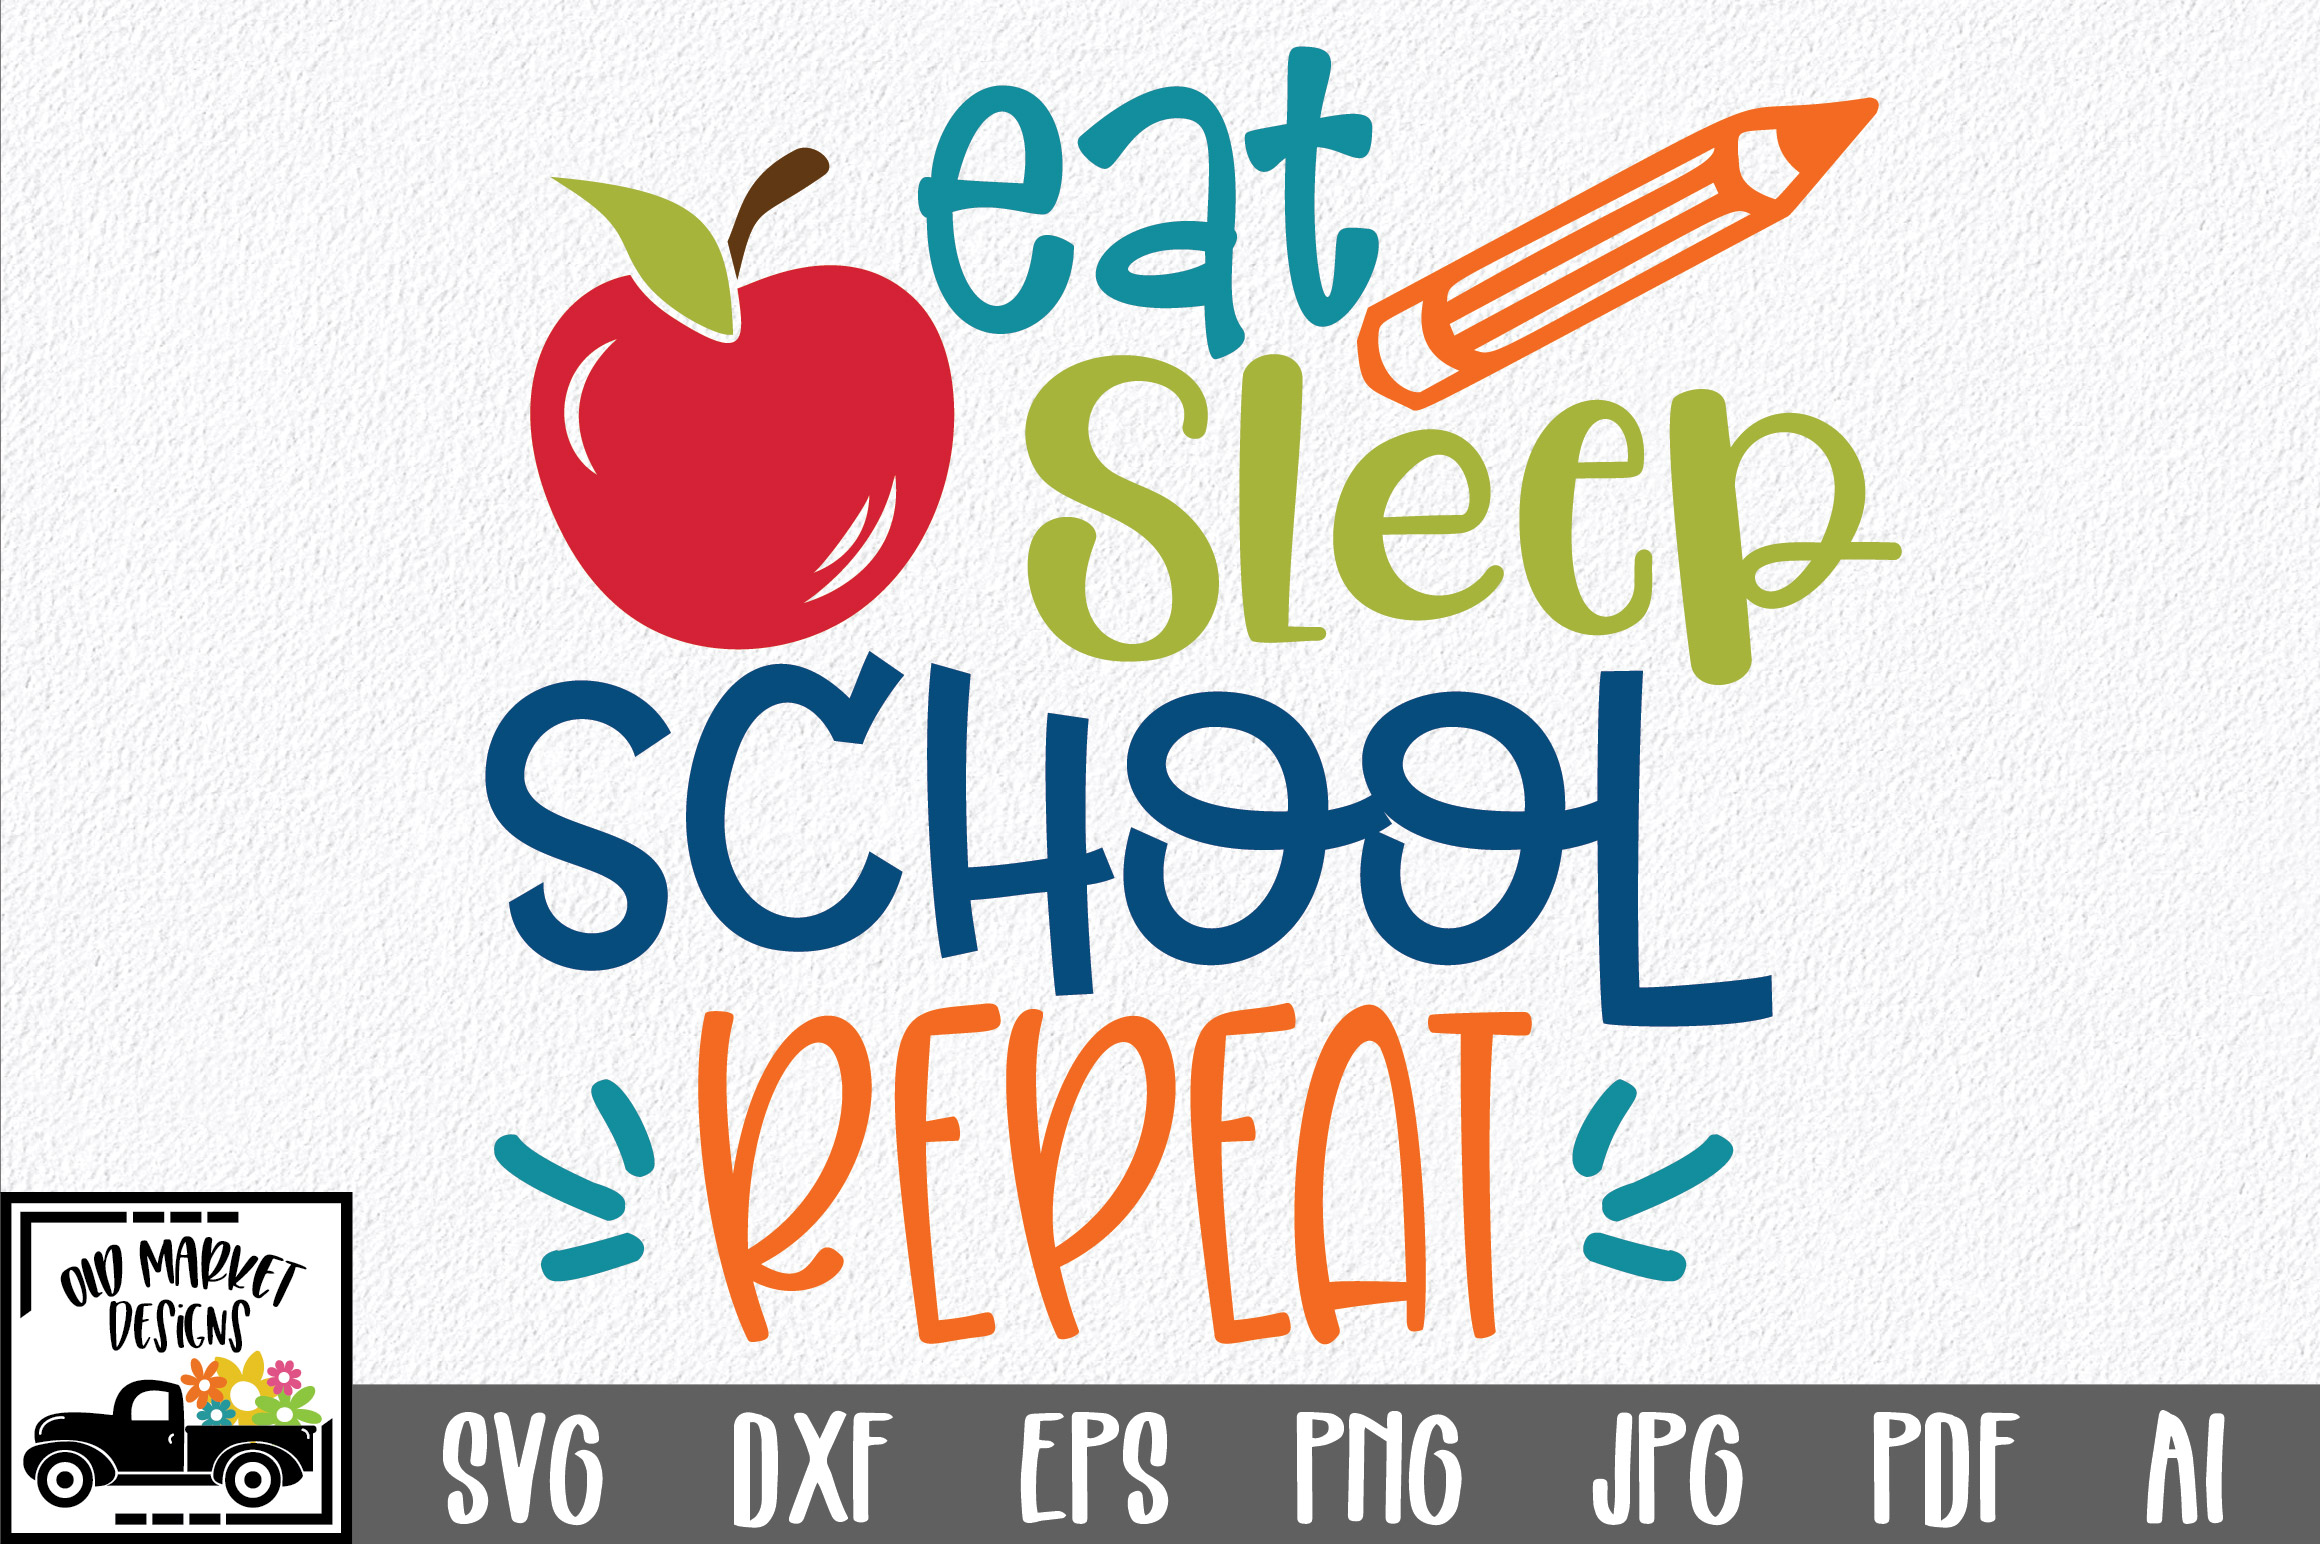 Download Free Eat Sleep School Repeat Svg Cut File Graphic By Oldmarketdesigns for Cricut Explore, Silhouette and other cutting machines.